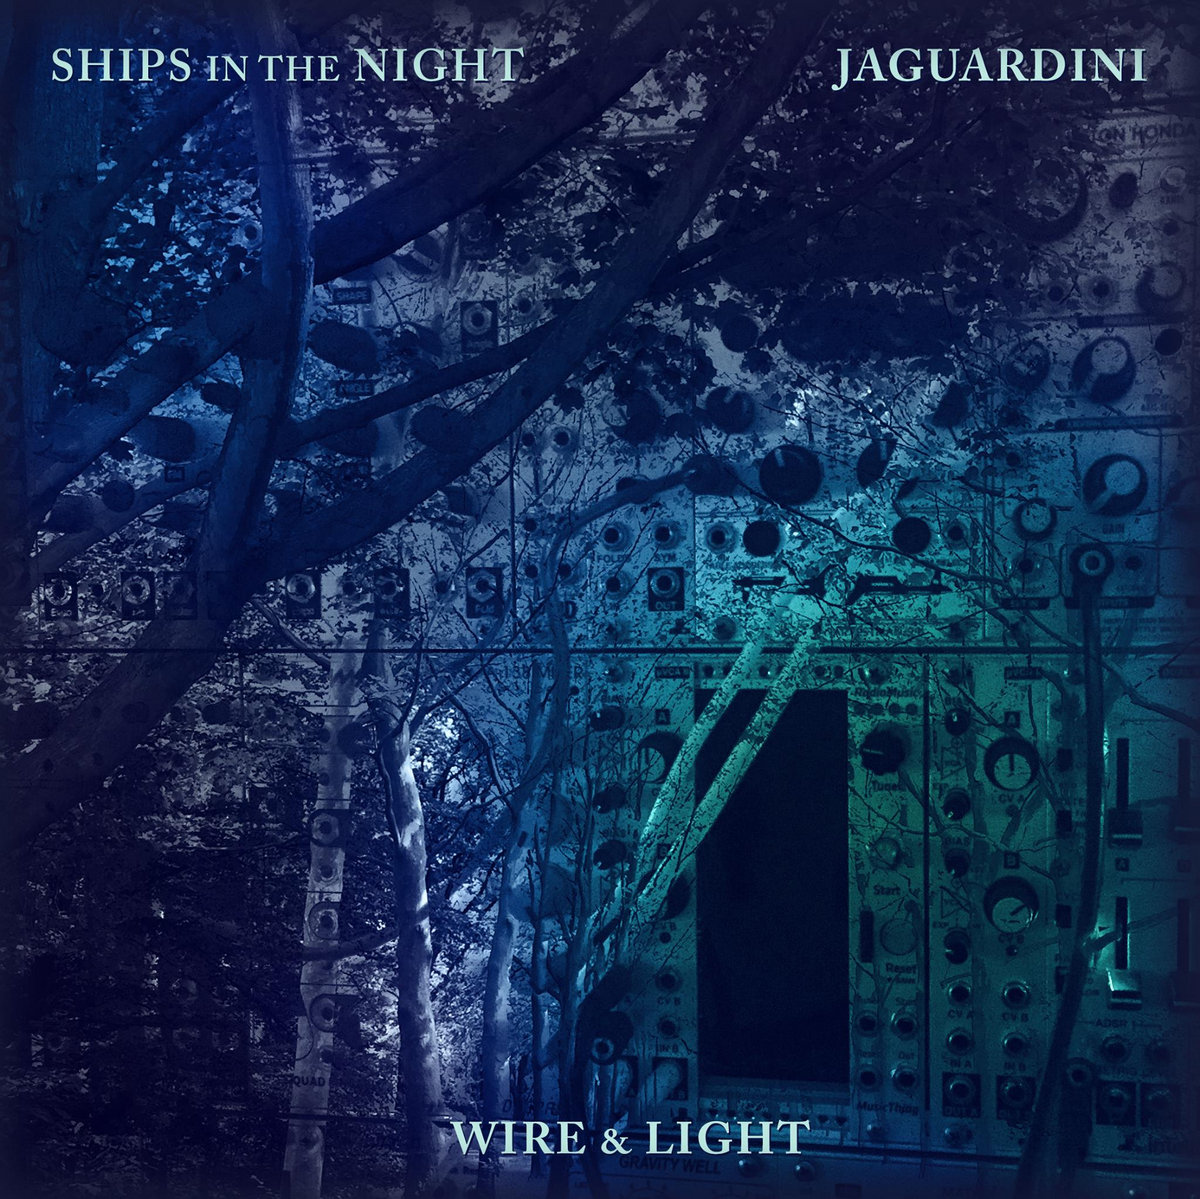 A Split From Ships In The Night And Jaguardini With All Proceeds Supporting Wire Light Summer 2016 Tour Handmade Packaging Limited Edition